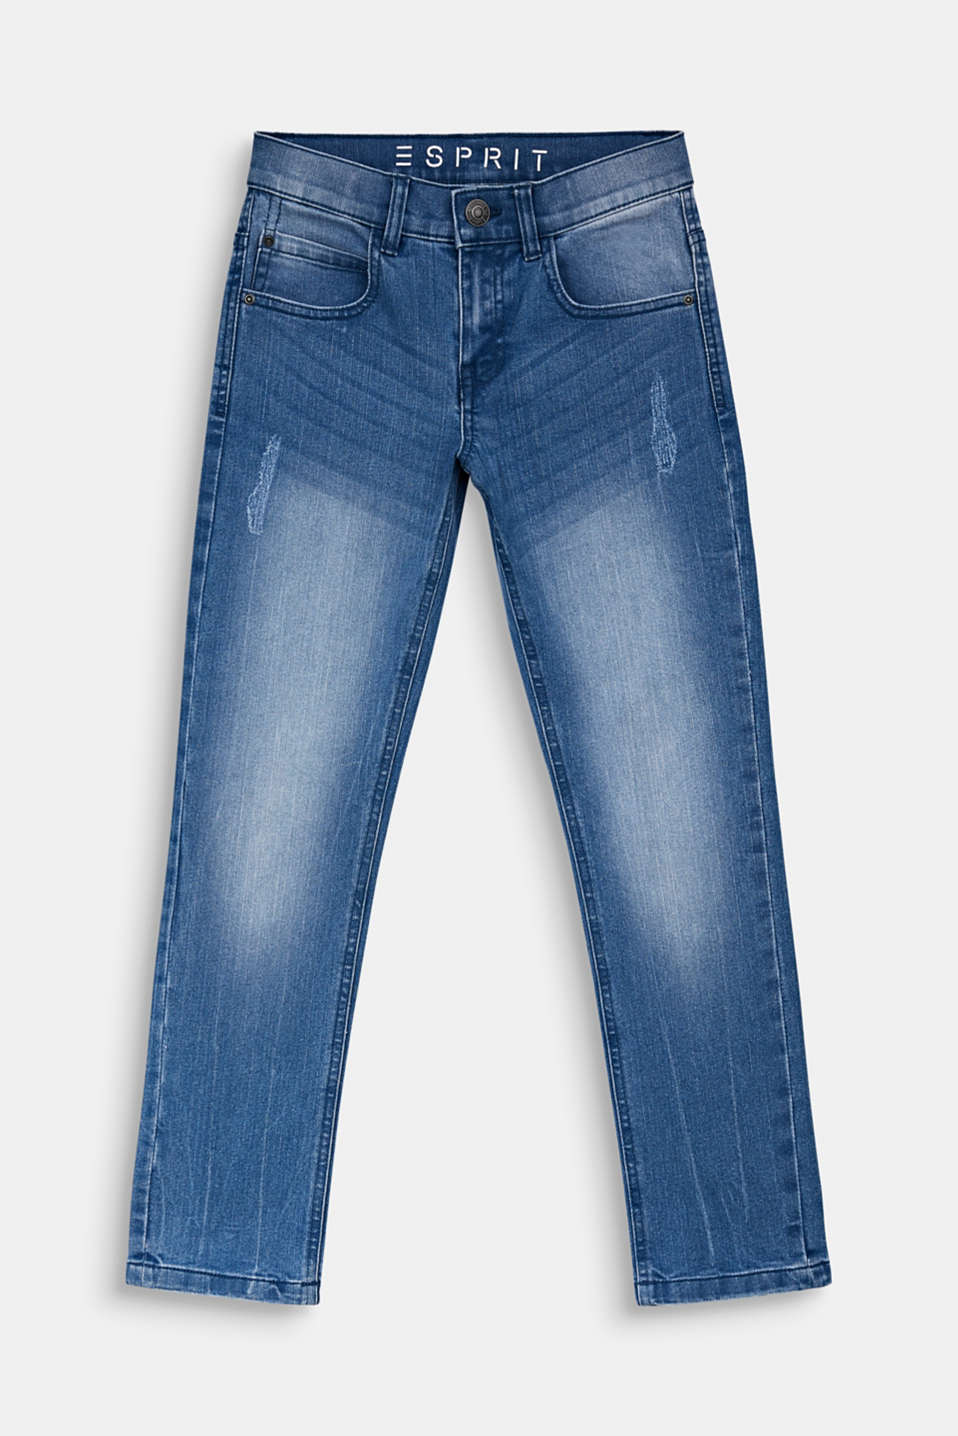 Esprit - Jeans in a vintage look with an adjustable waistband